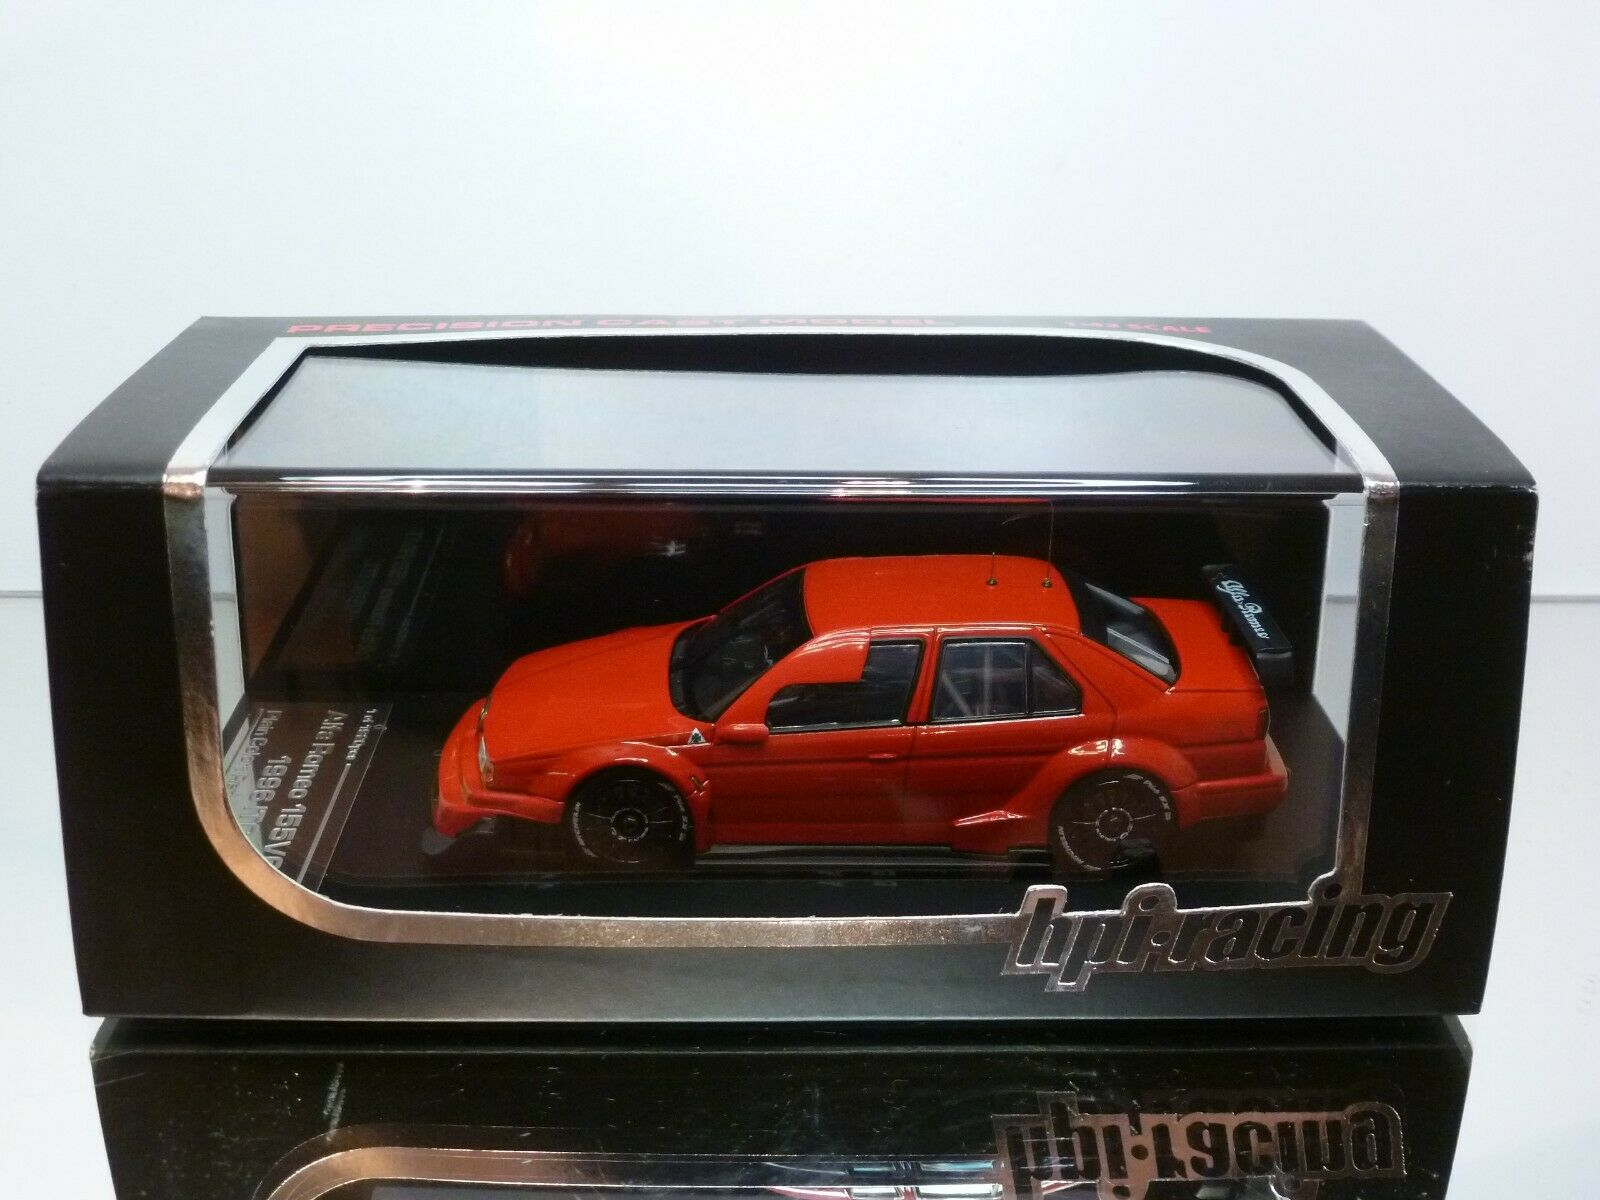 HPI-RACING 8026 ALFA ROMEO 155 V6 TI ITC - rosso 1 43 - EXCELLENT IN BOX